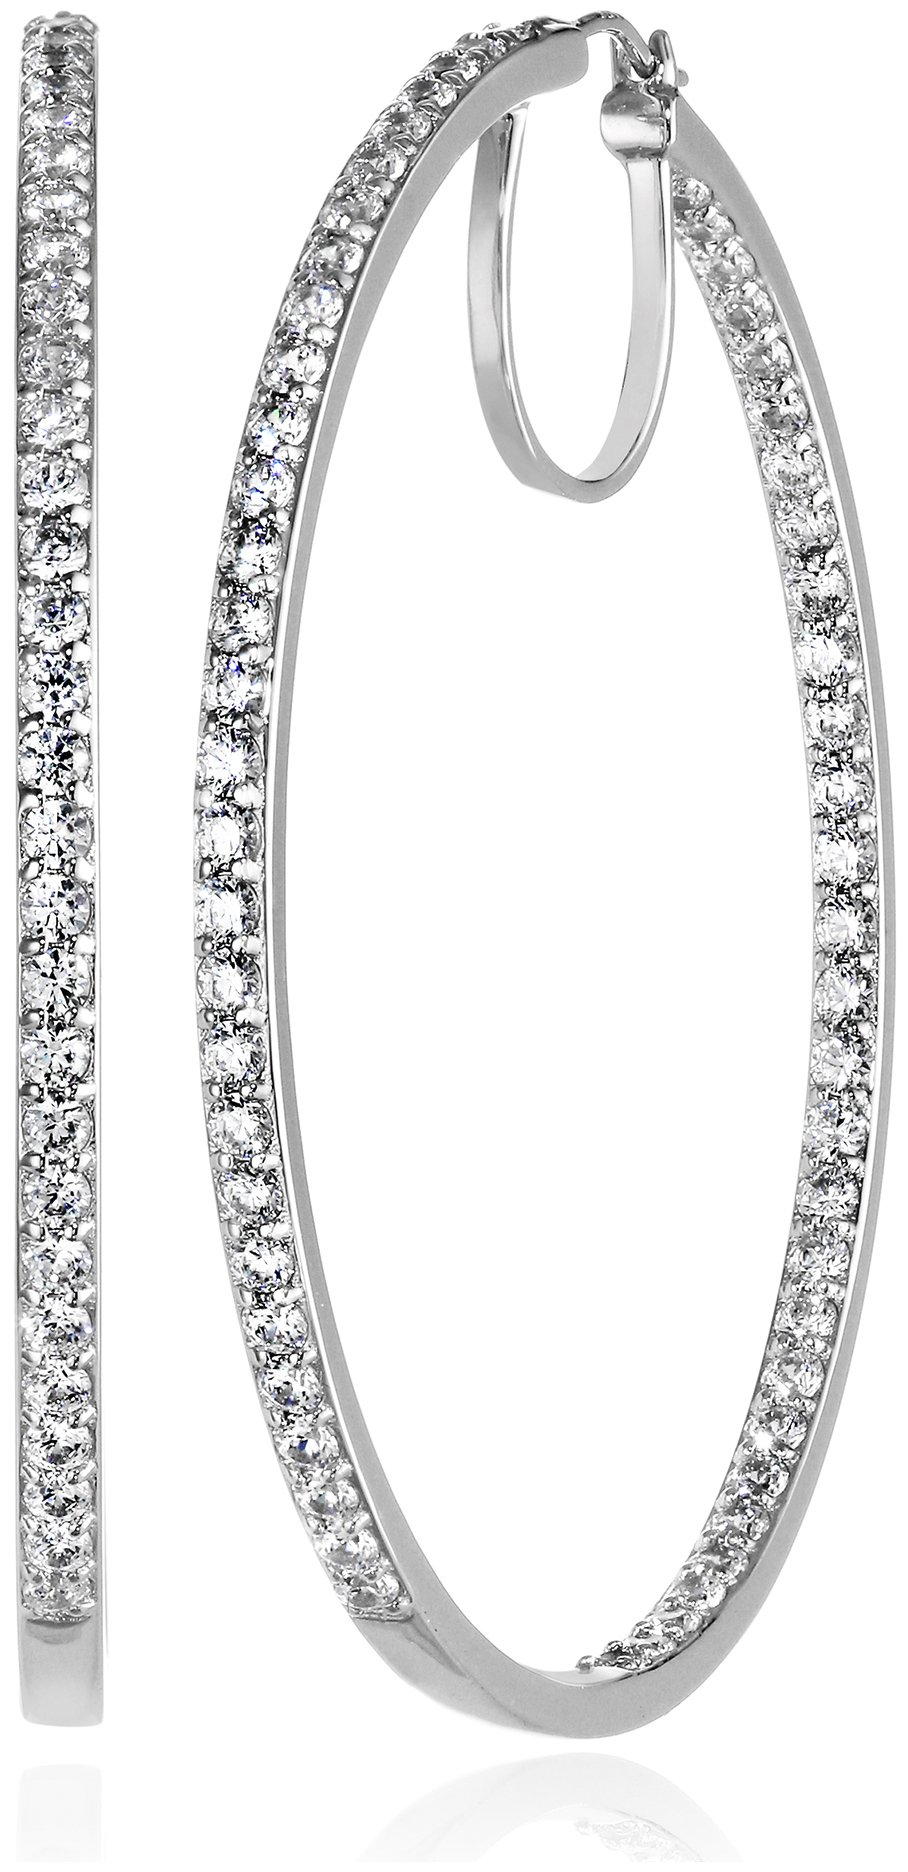 Platinum-or-Gold-Plated-Sterling-Silver-Swarovski-Zirconia-Hoop-Earrings-2-Diameter